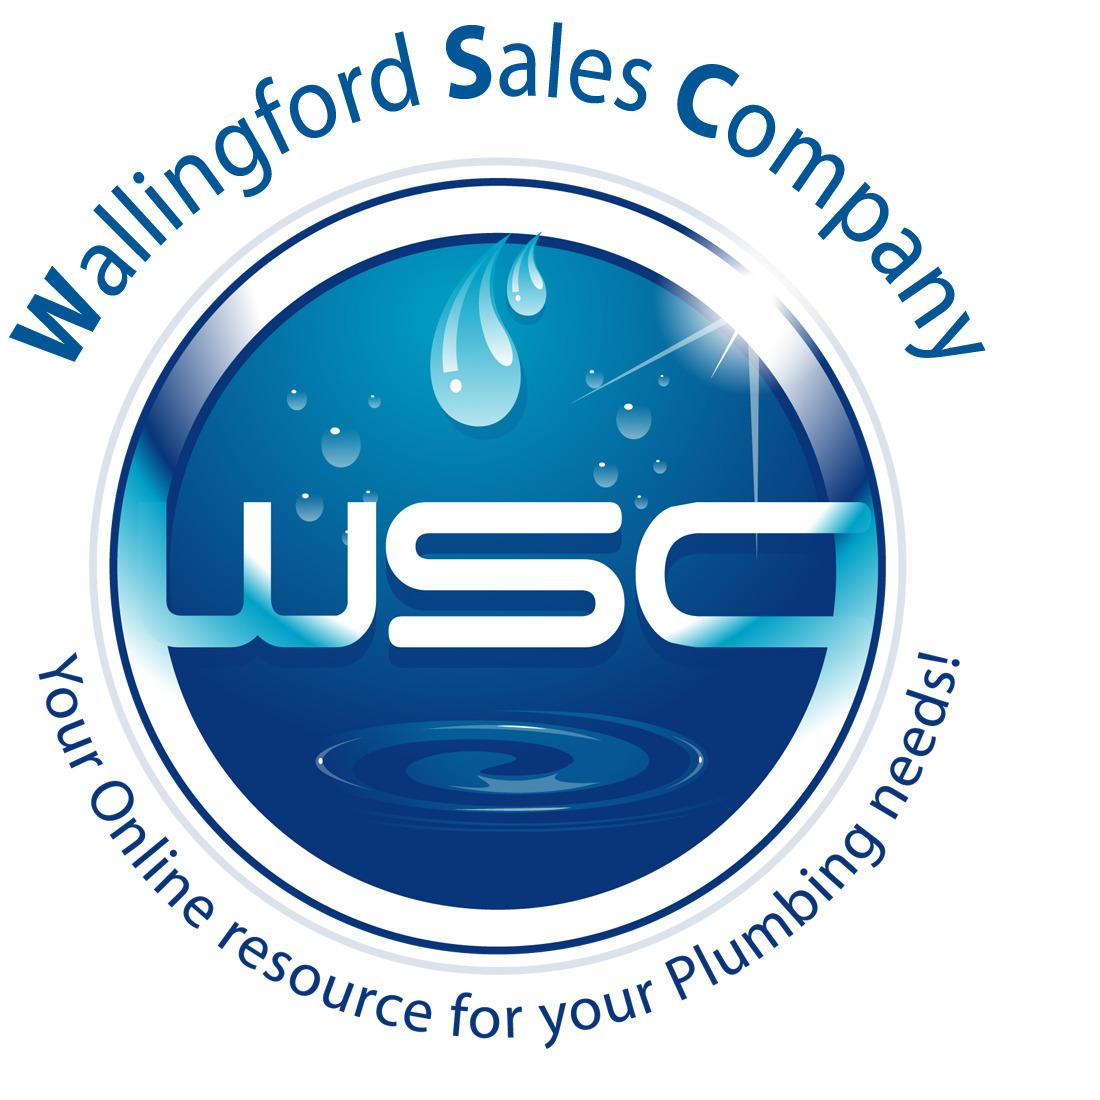 Wallingford Sales Company